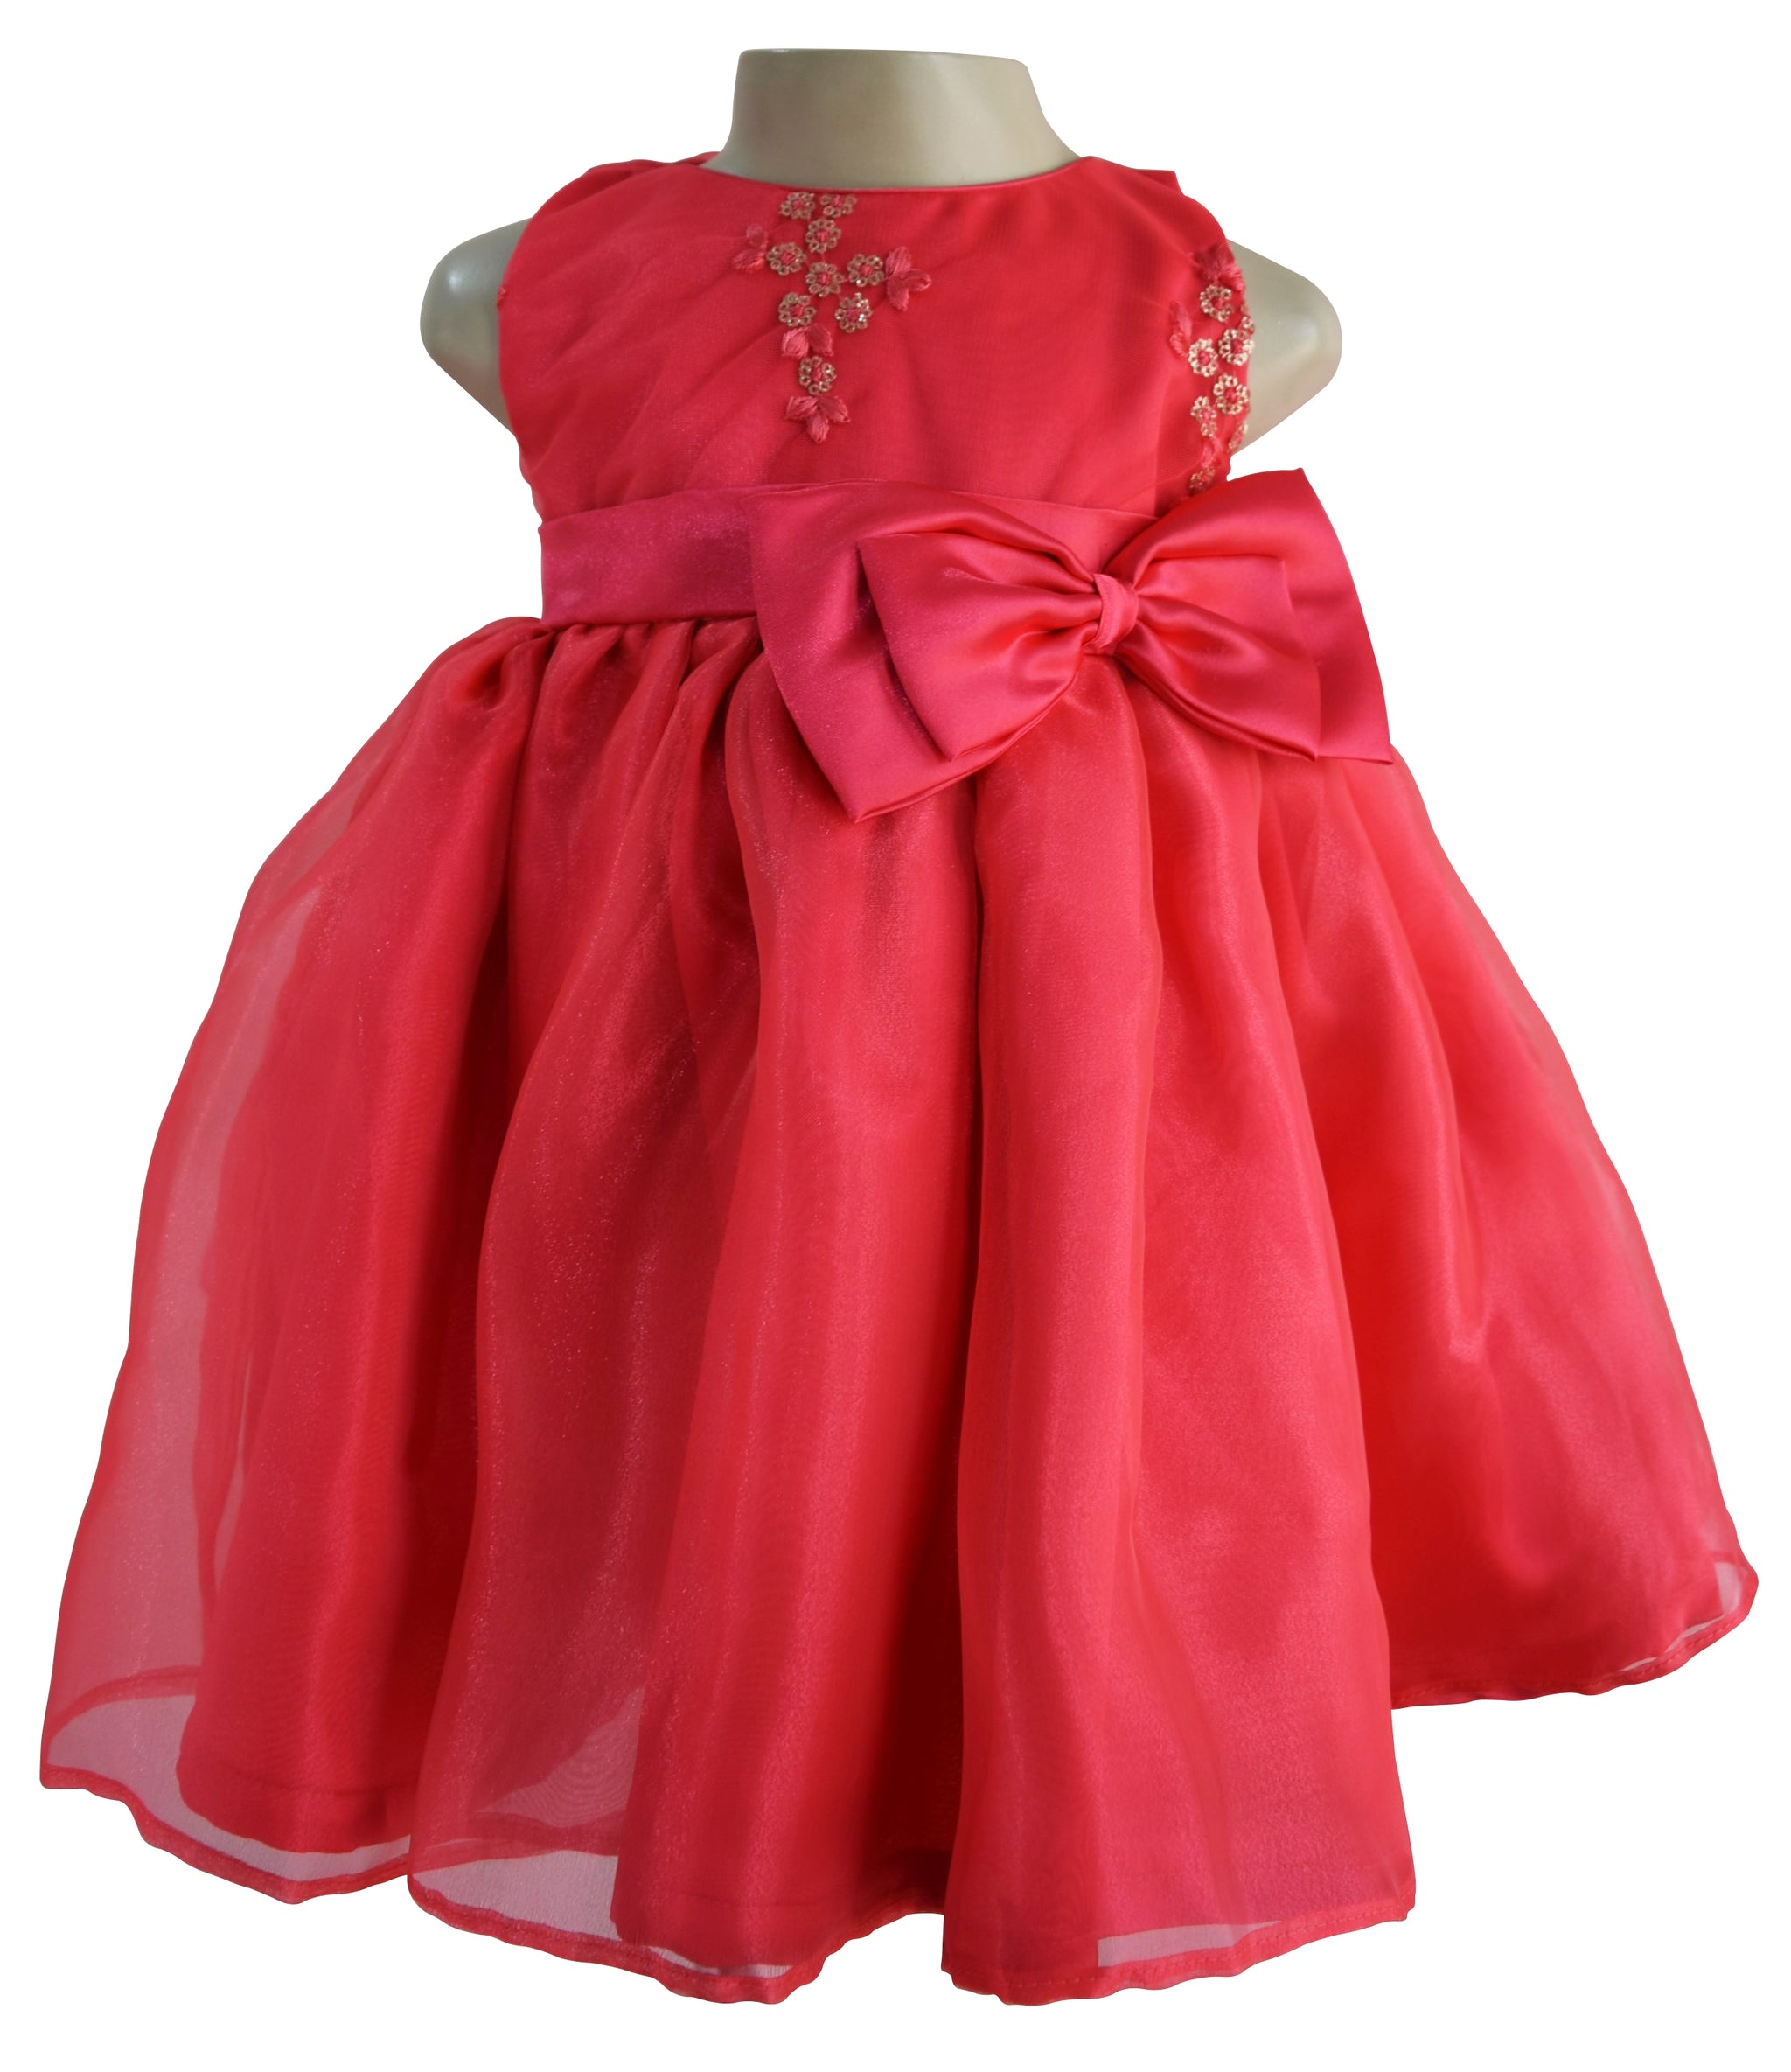 354472494d Dress for girls Coral Embroidered Kids Dress